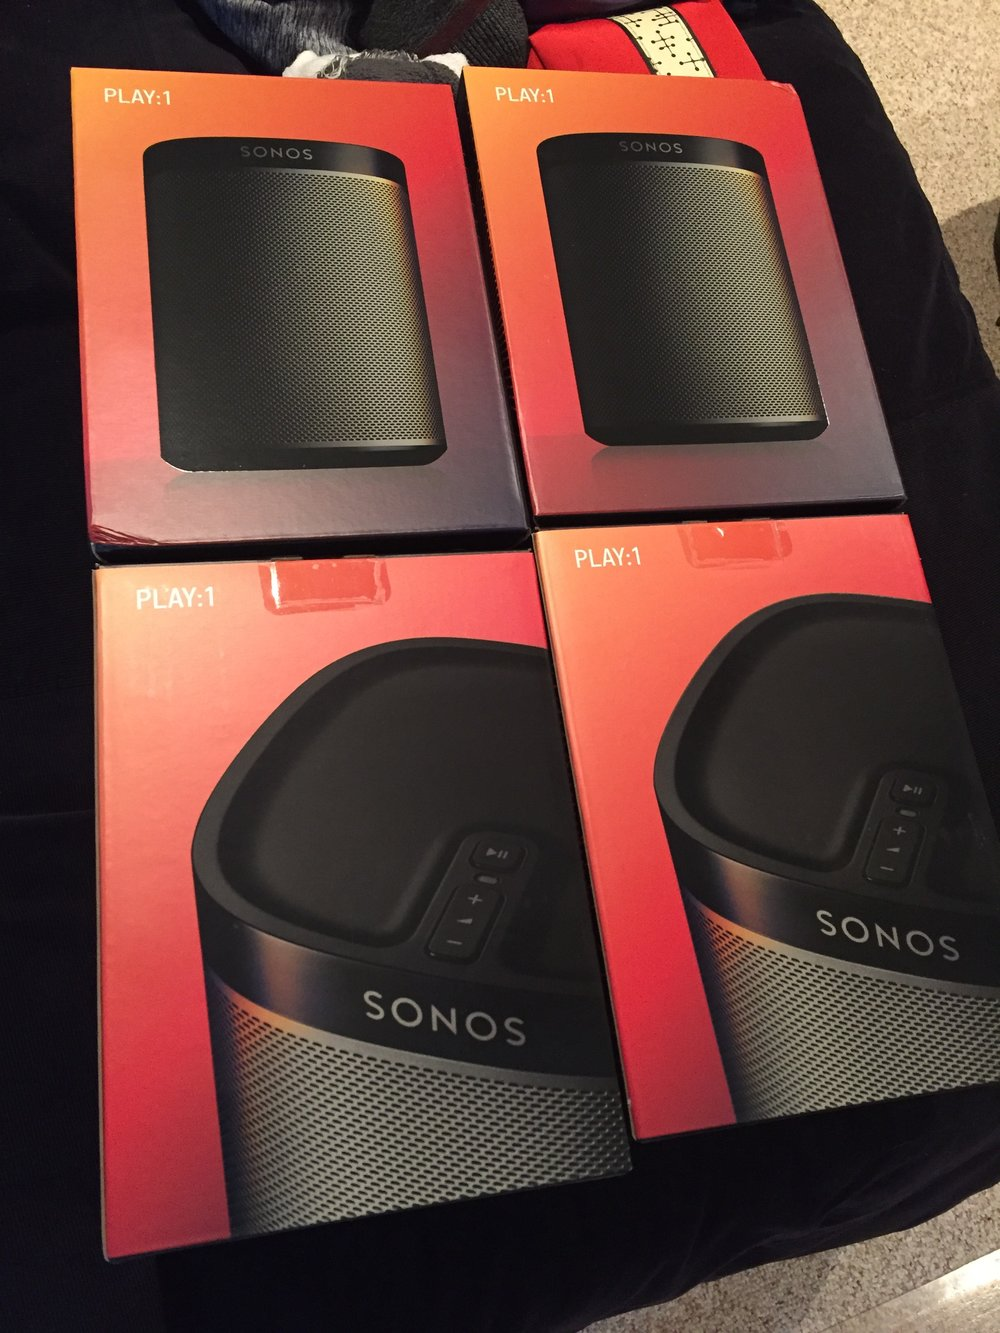 Sonos to South Africa